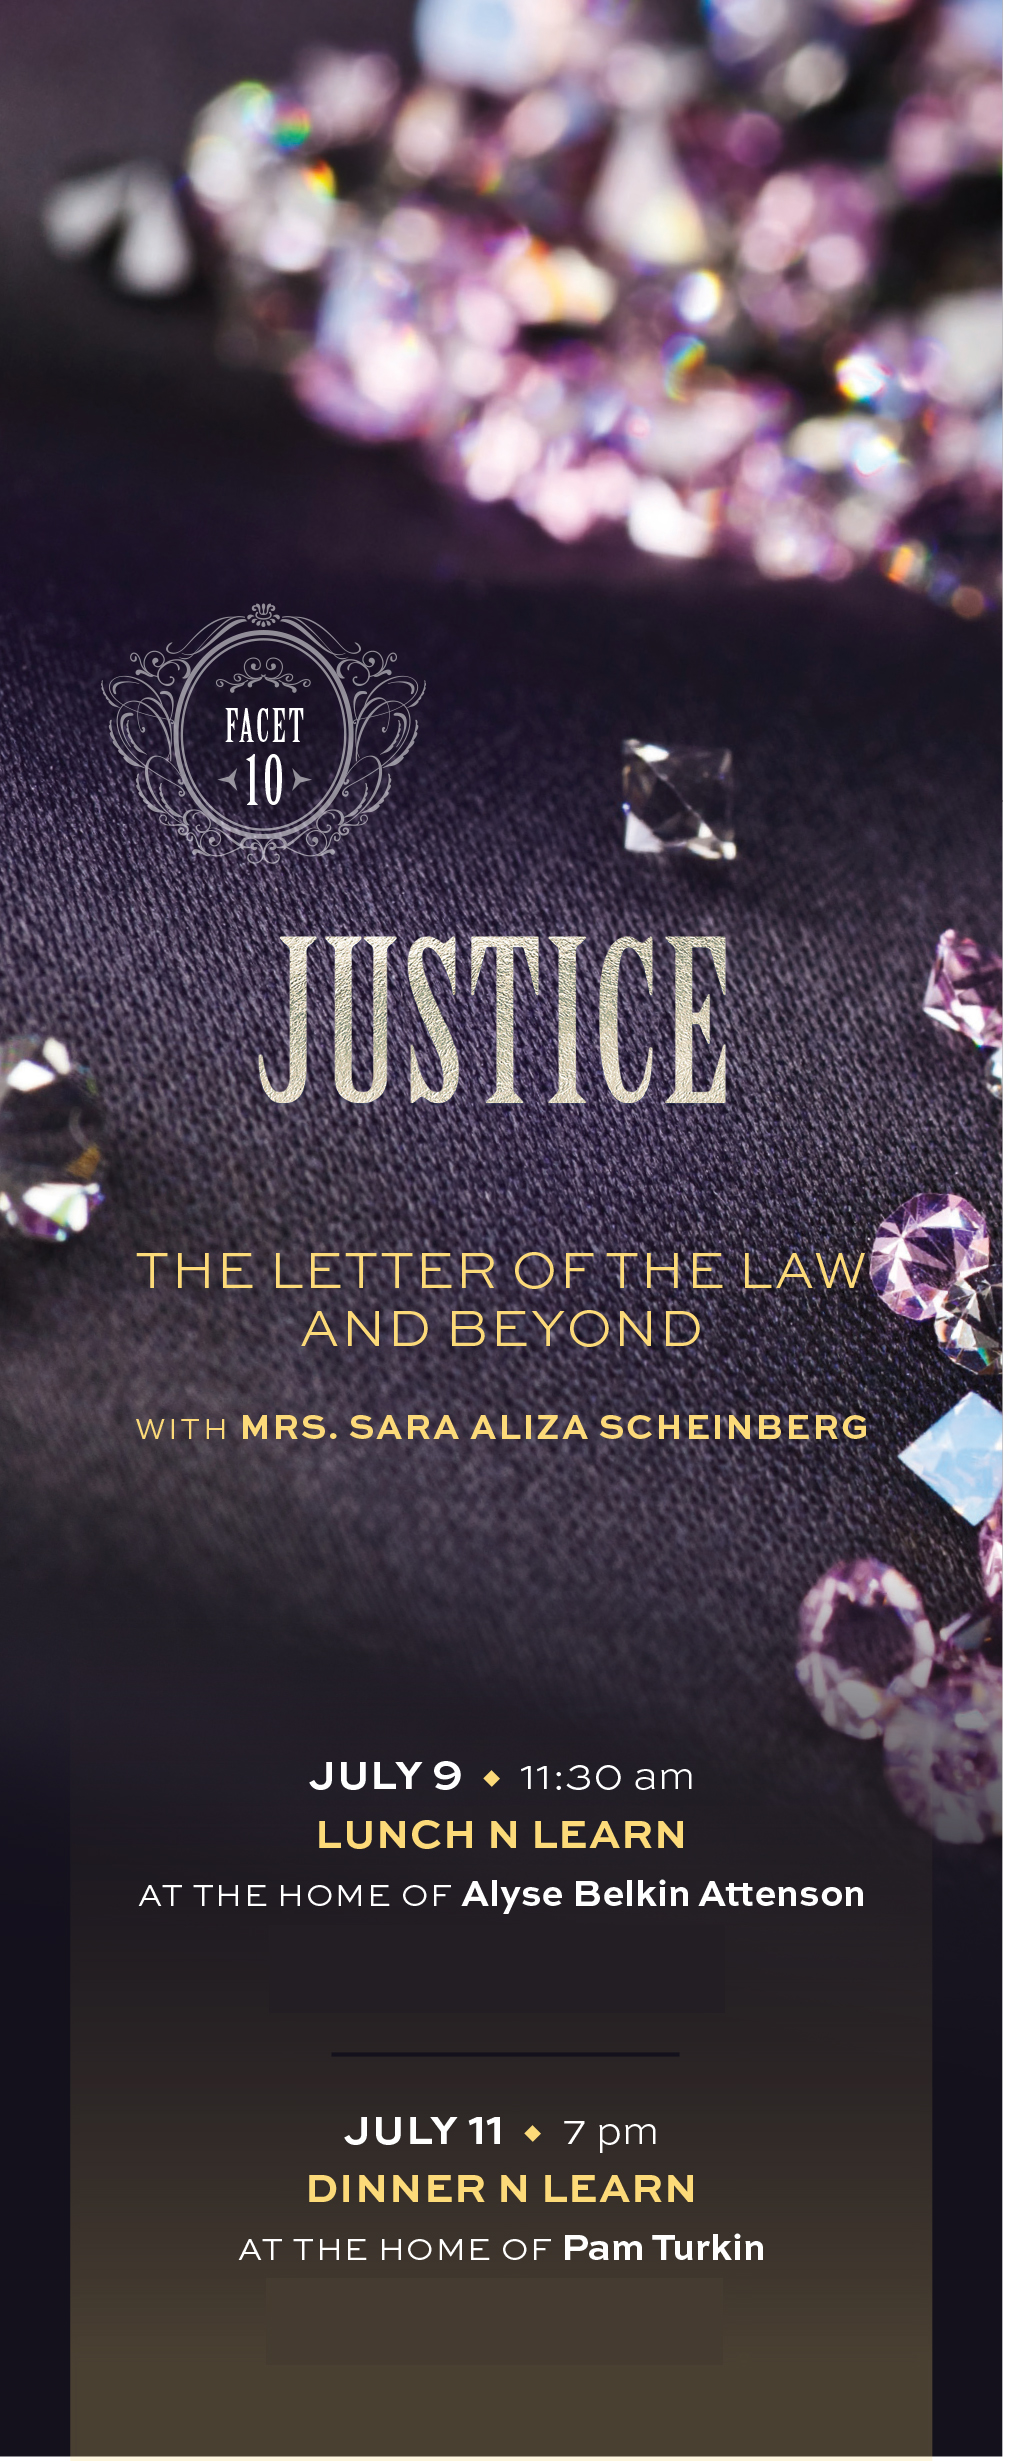 Facets - Justice: The Letter of the Law and Beyond Dinner 'n Learn